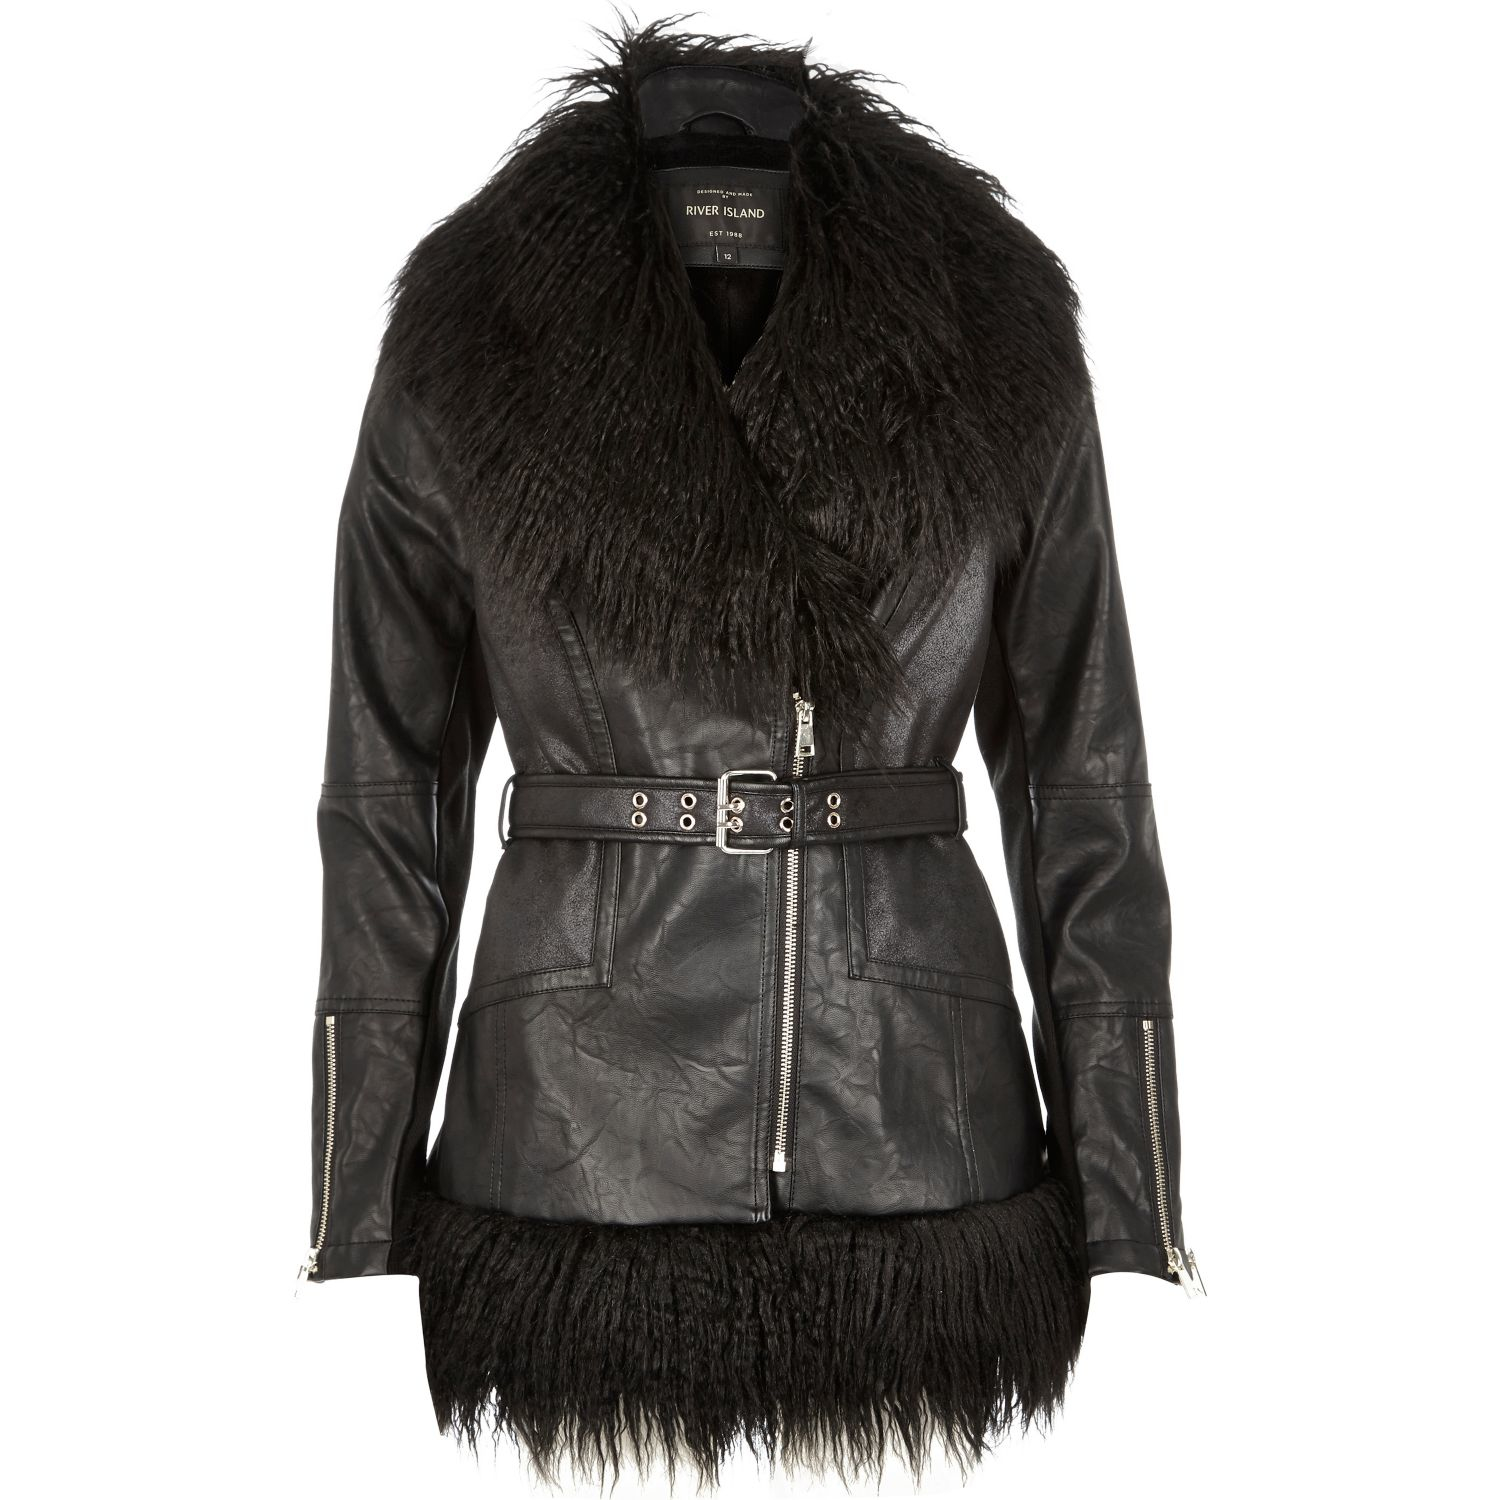 River island girls leather jacket